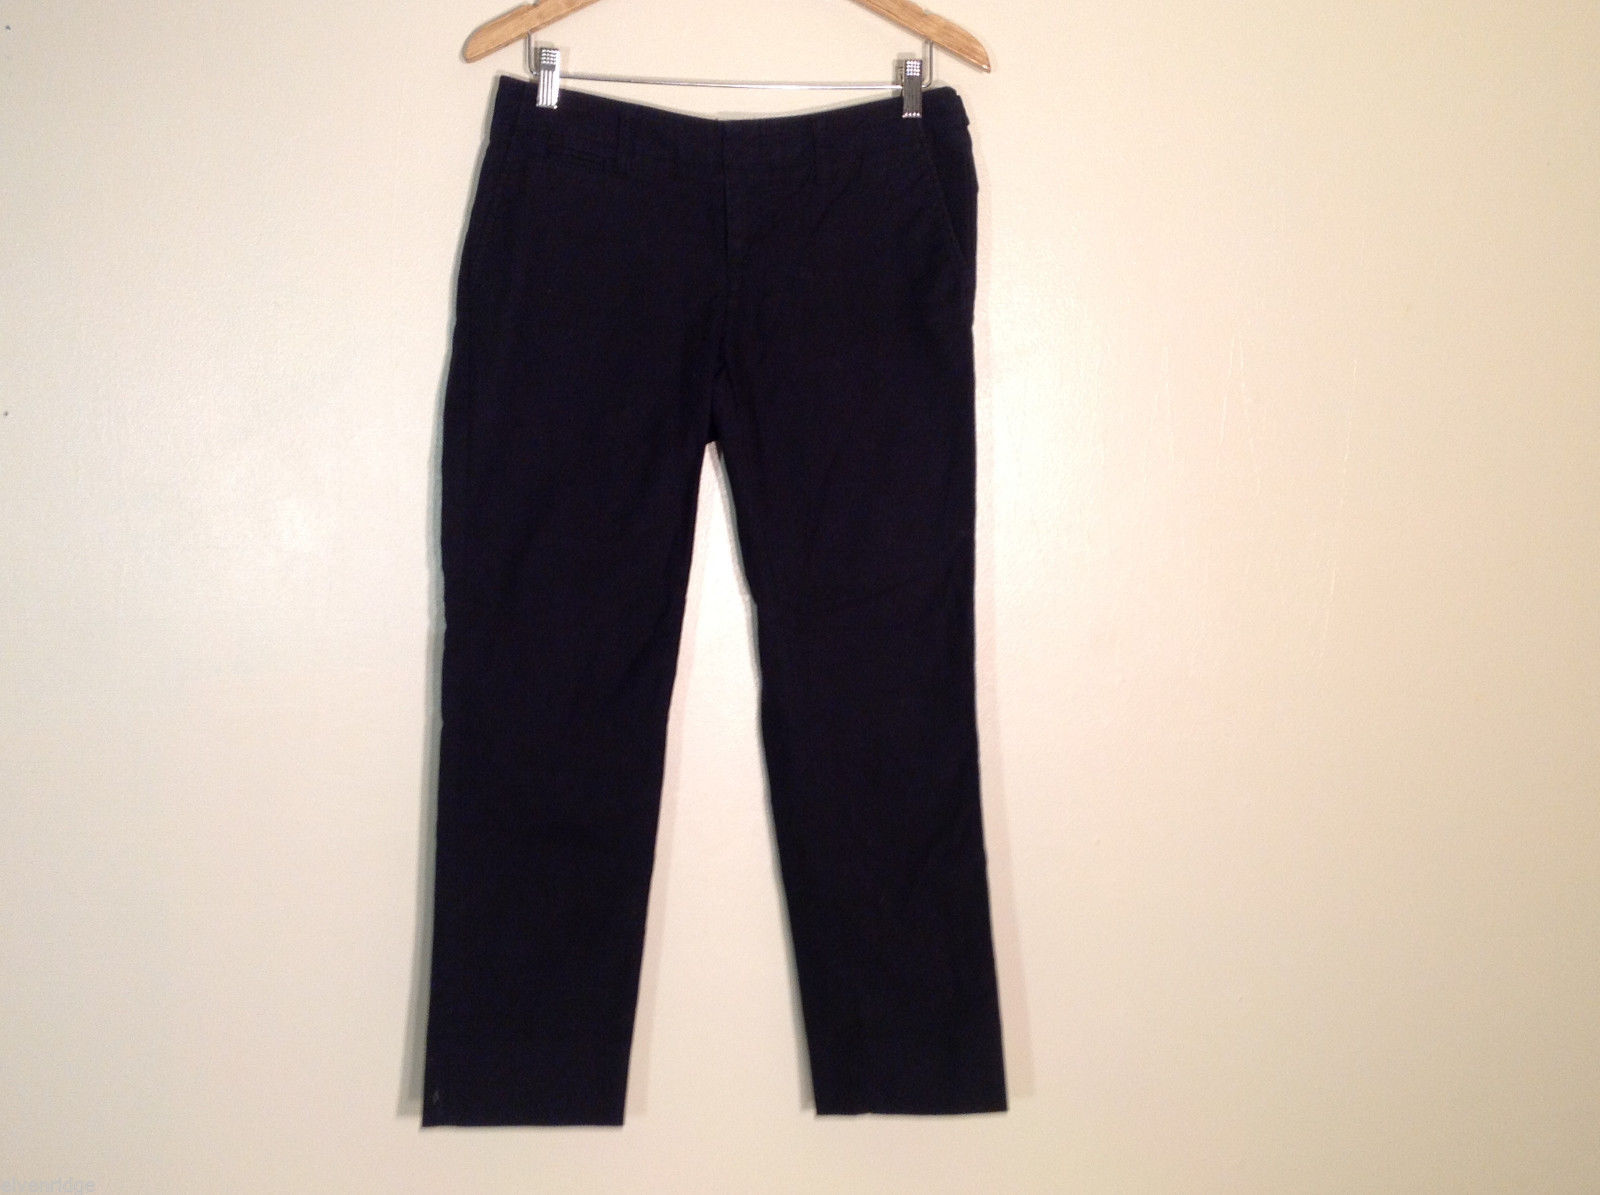 GapStretch Women's Size 6R Black Jeans/Pants